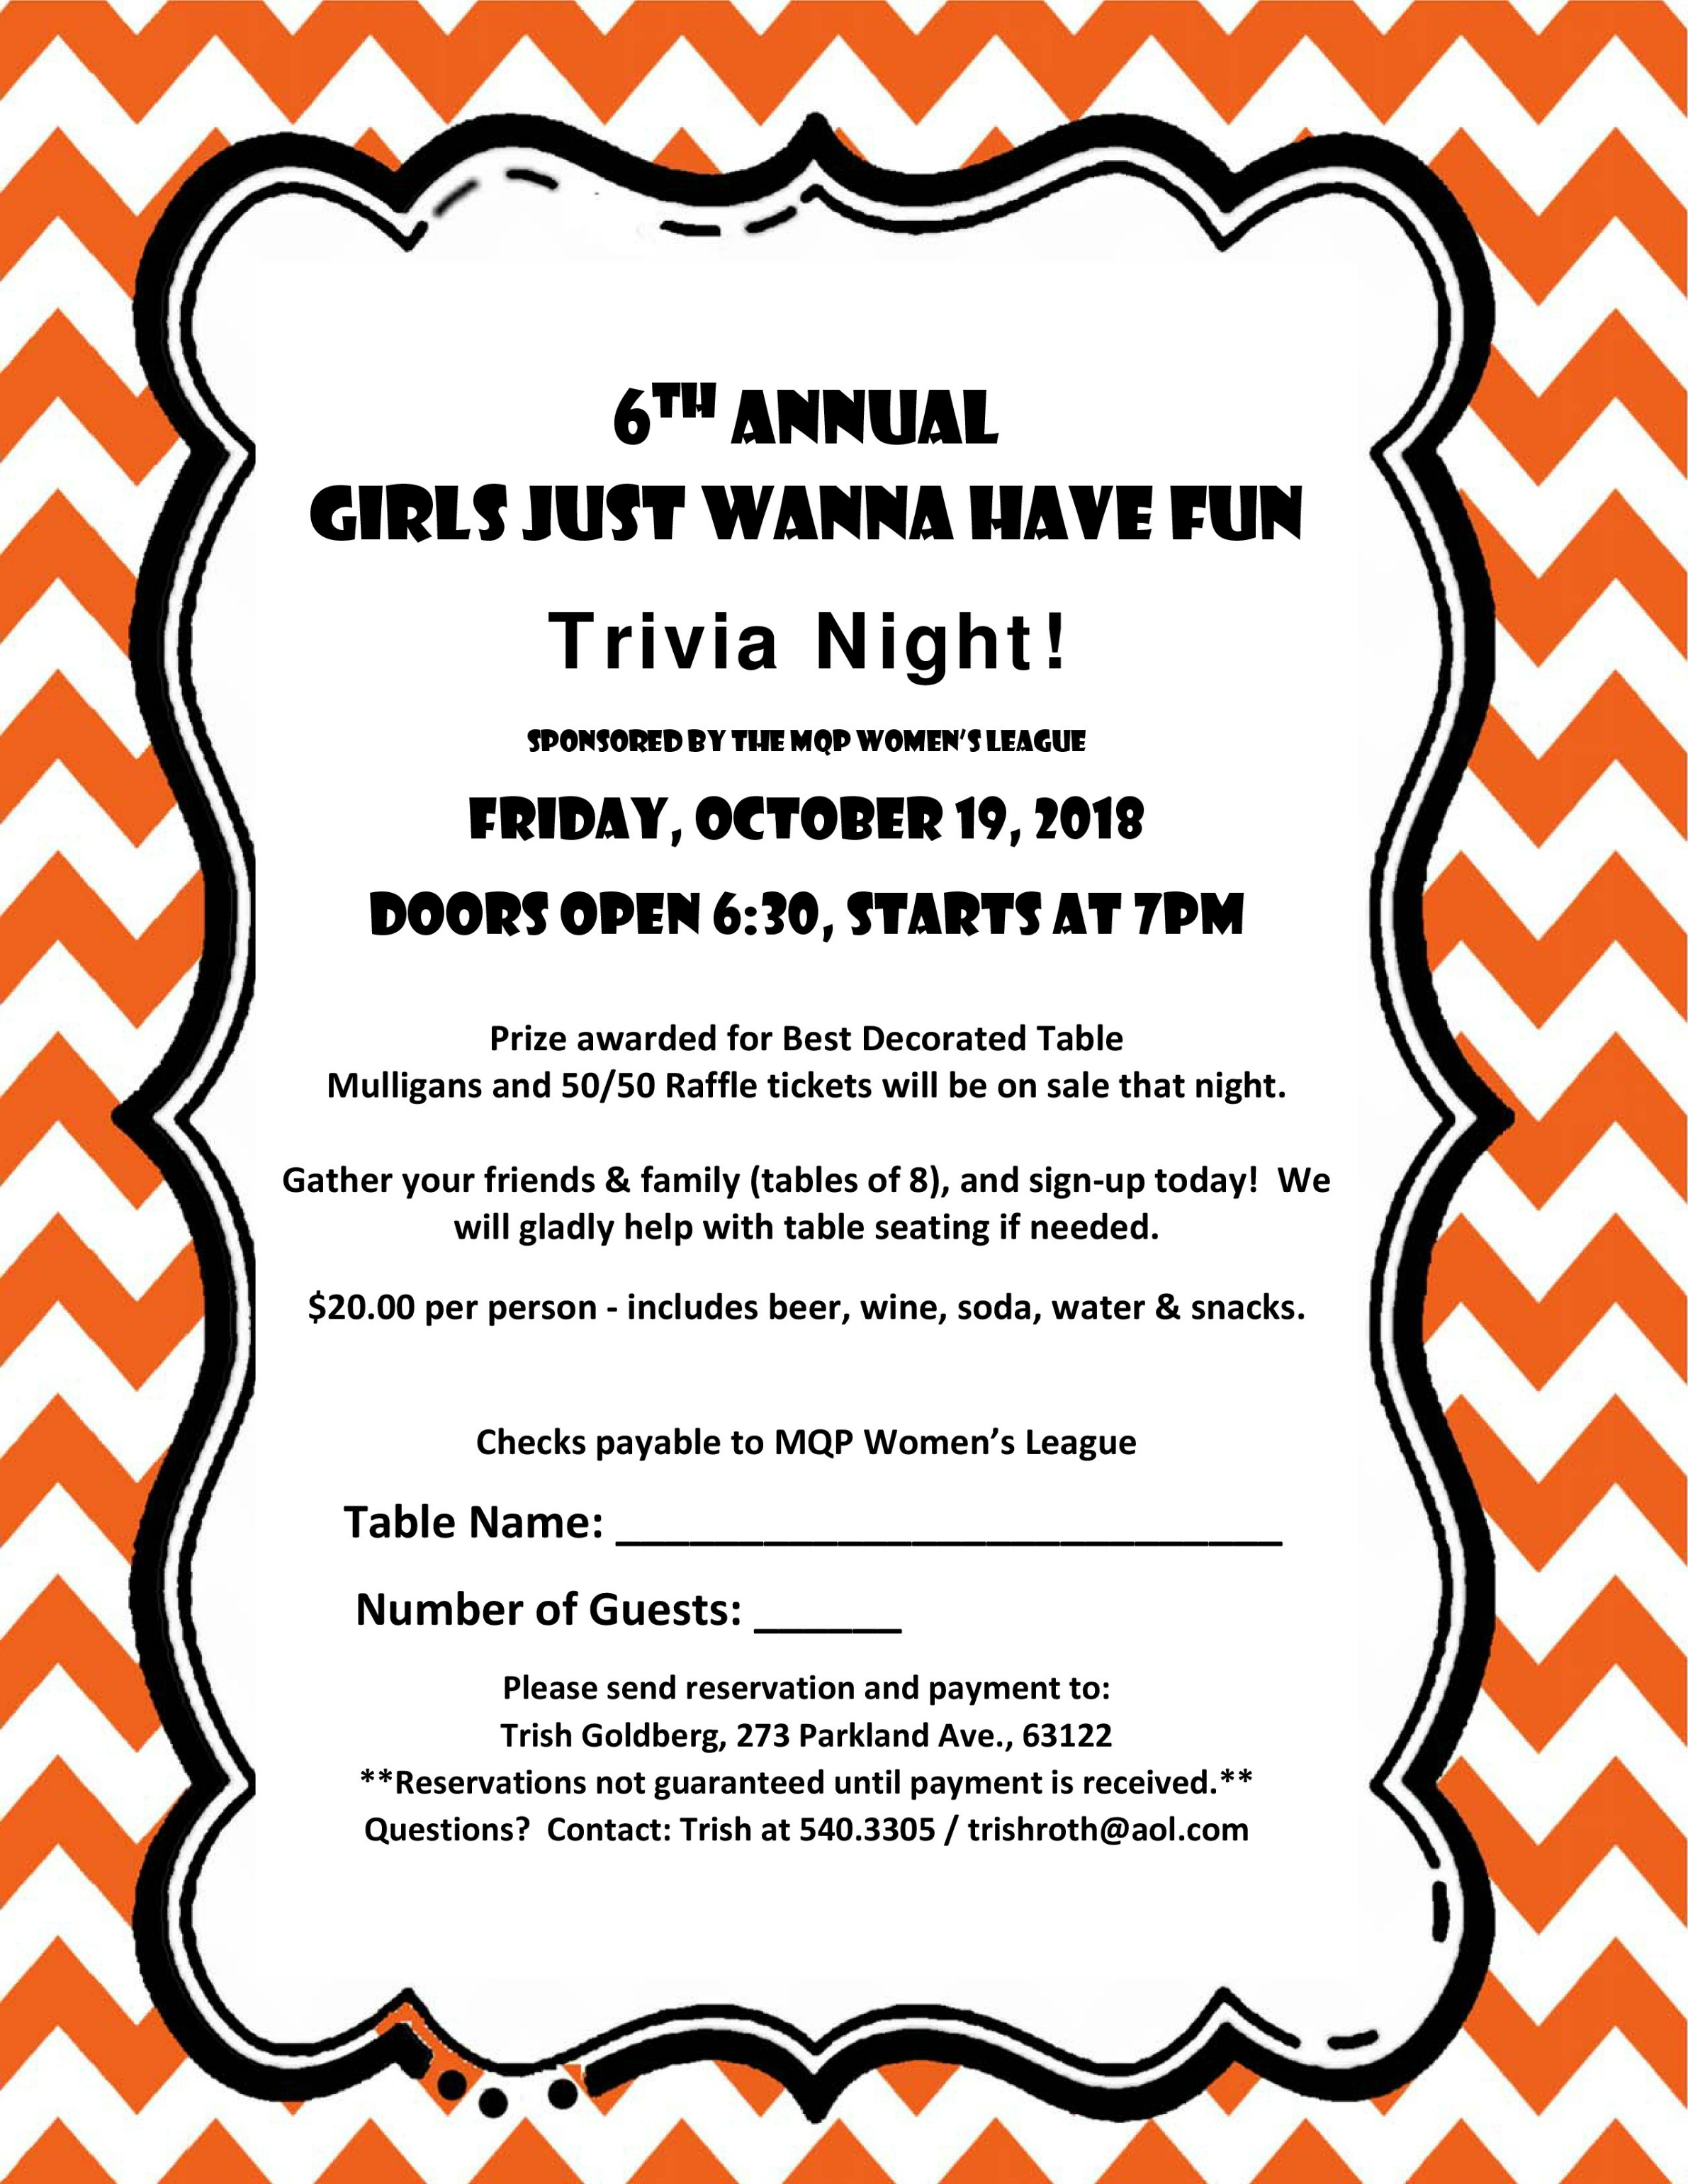 It's Not Too Late to Join Women's League for Trivia Night